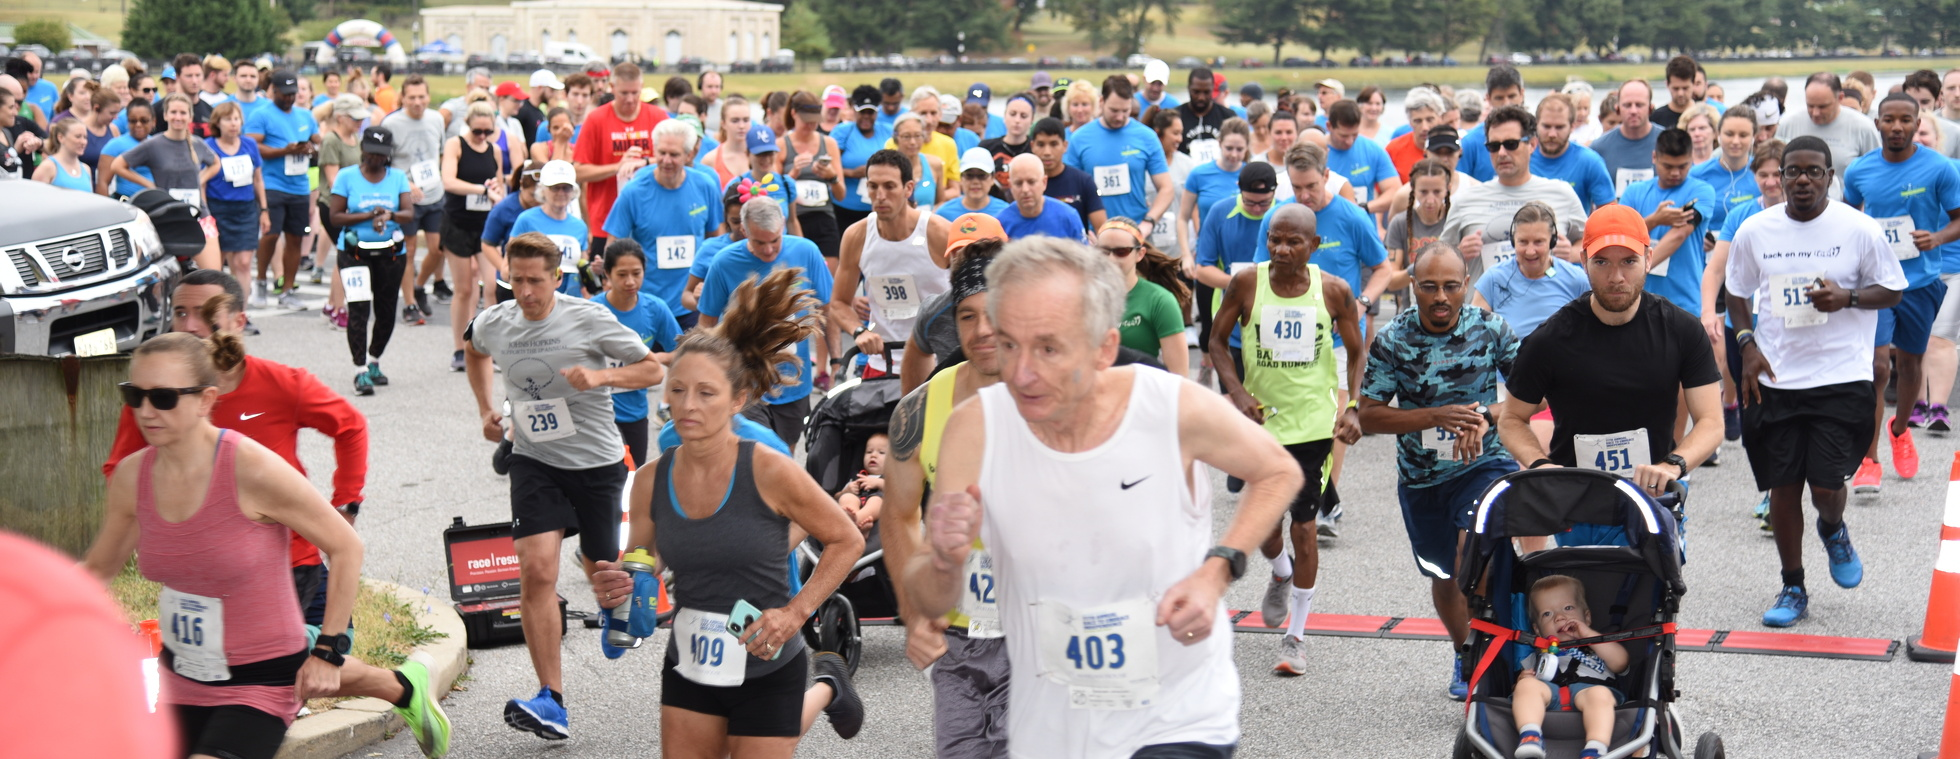 12th Annual Race to Embrace Independence 5K